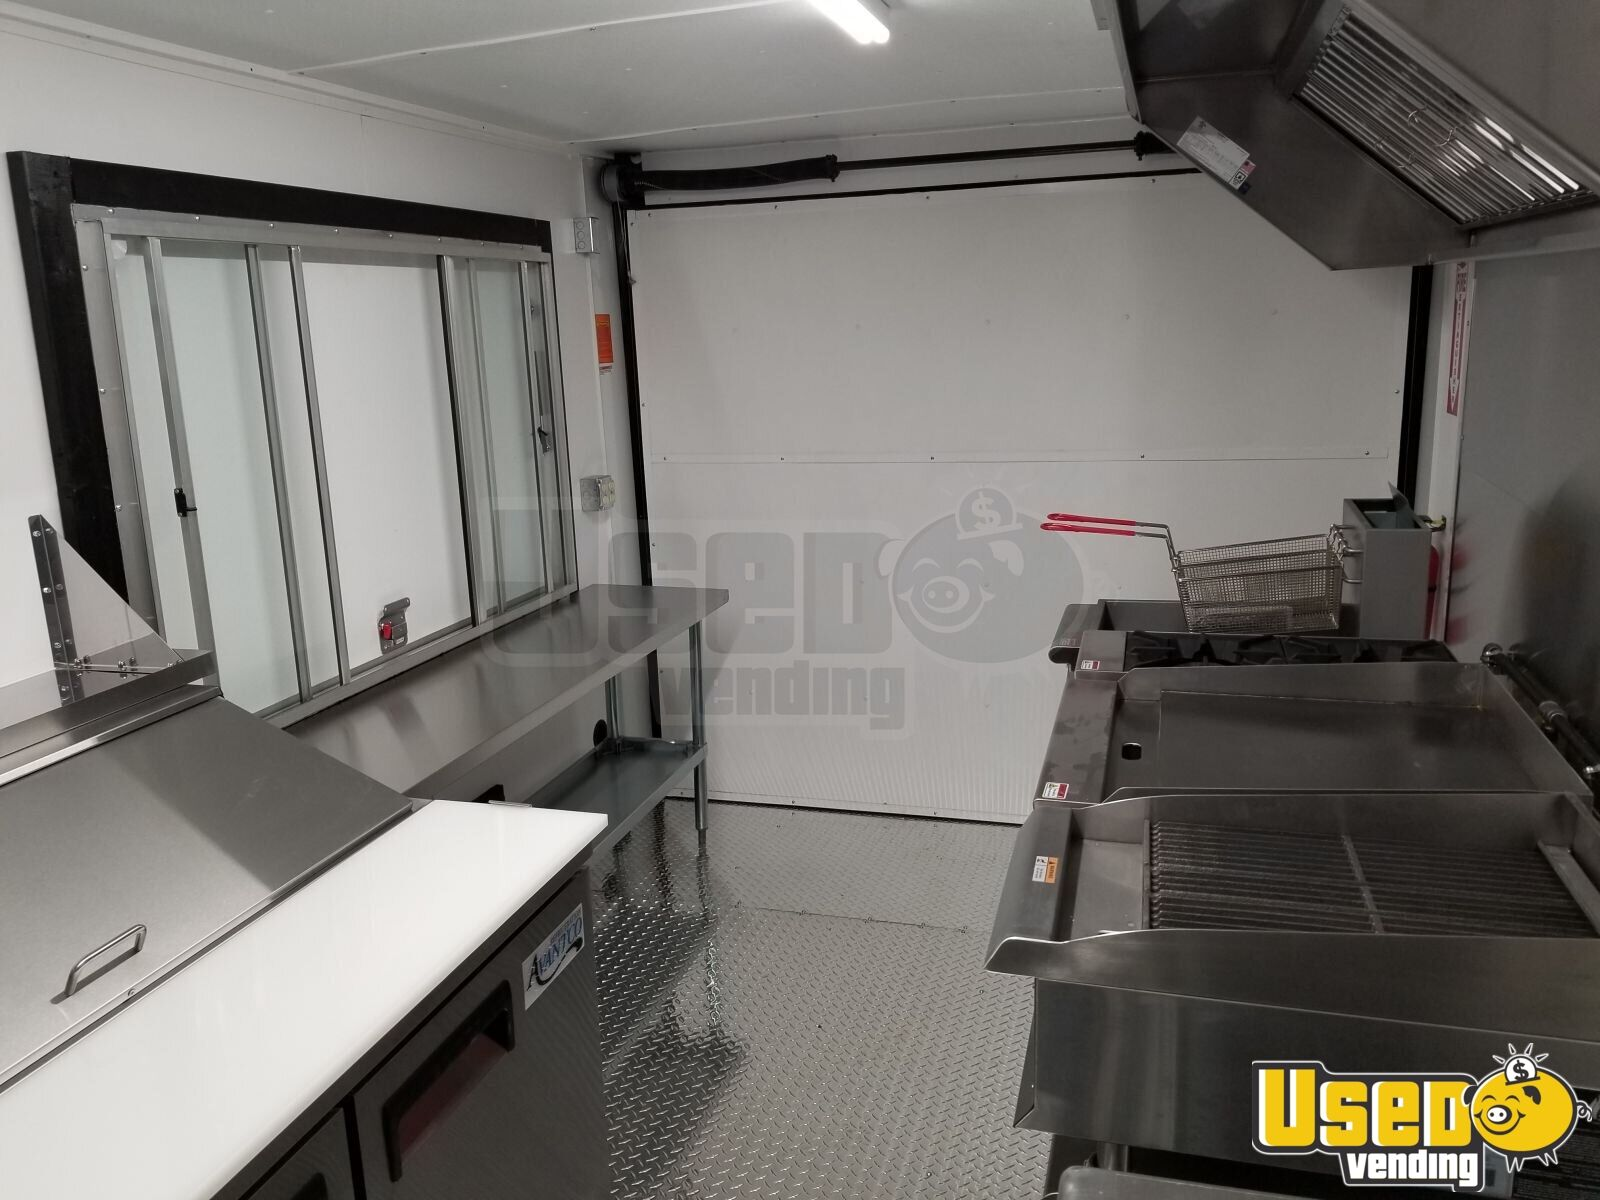 2019 Us Cargo Concession Trailer Steam Table Pennsylvania for Sale - 12